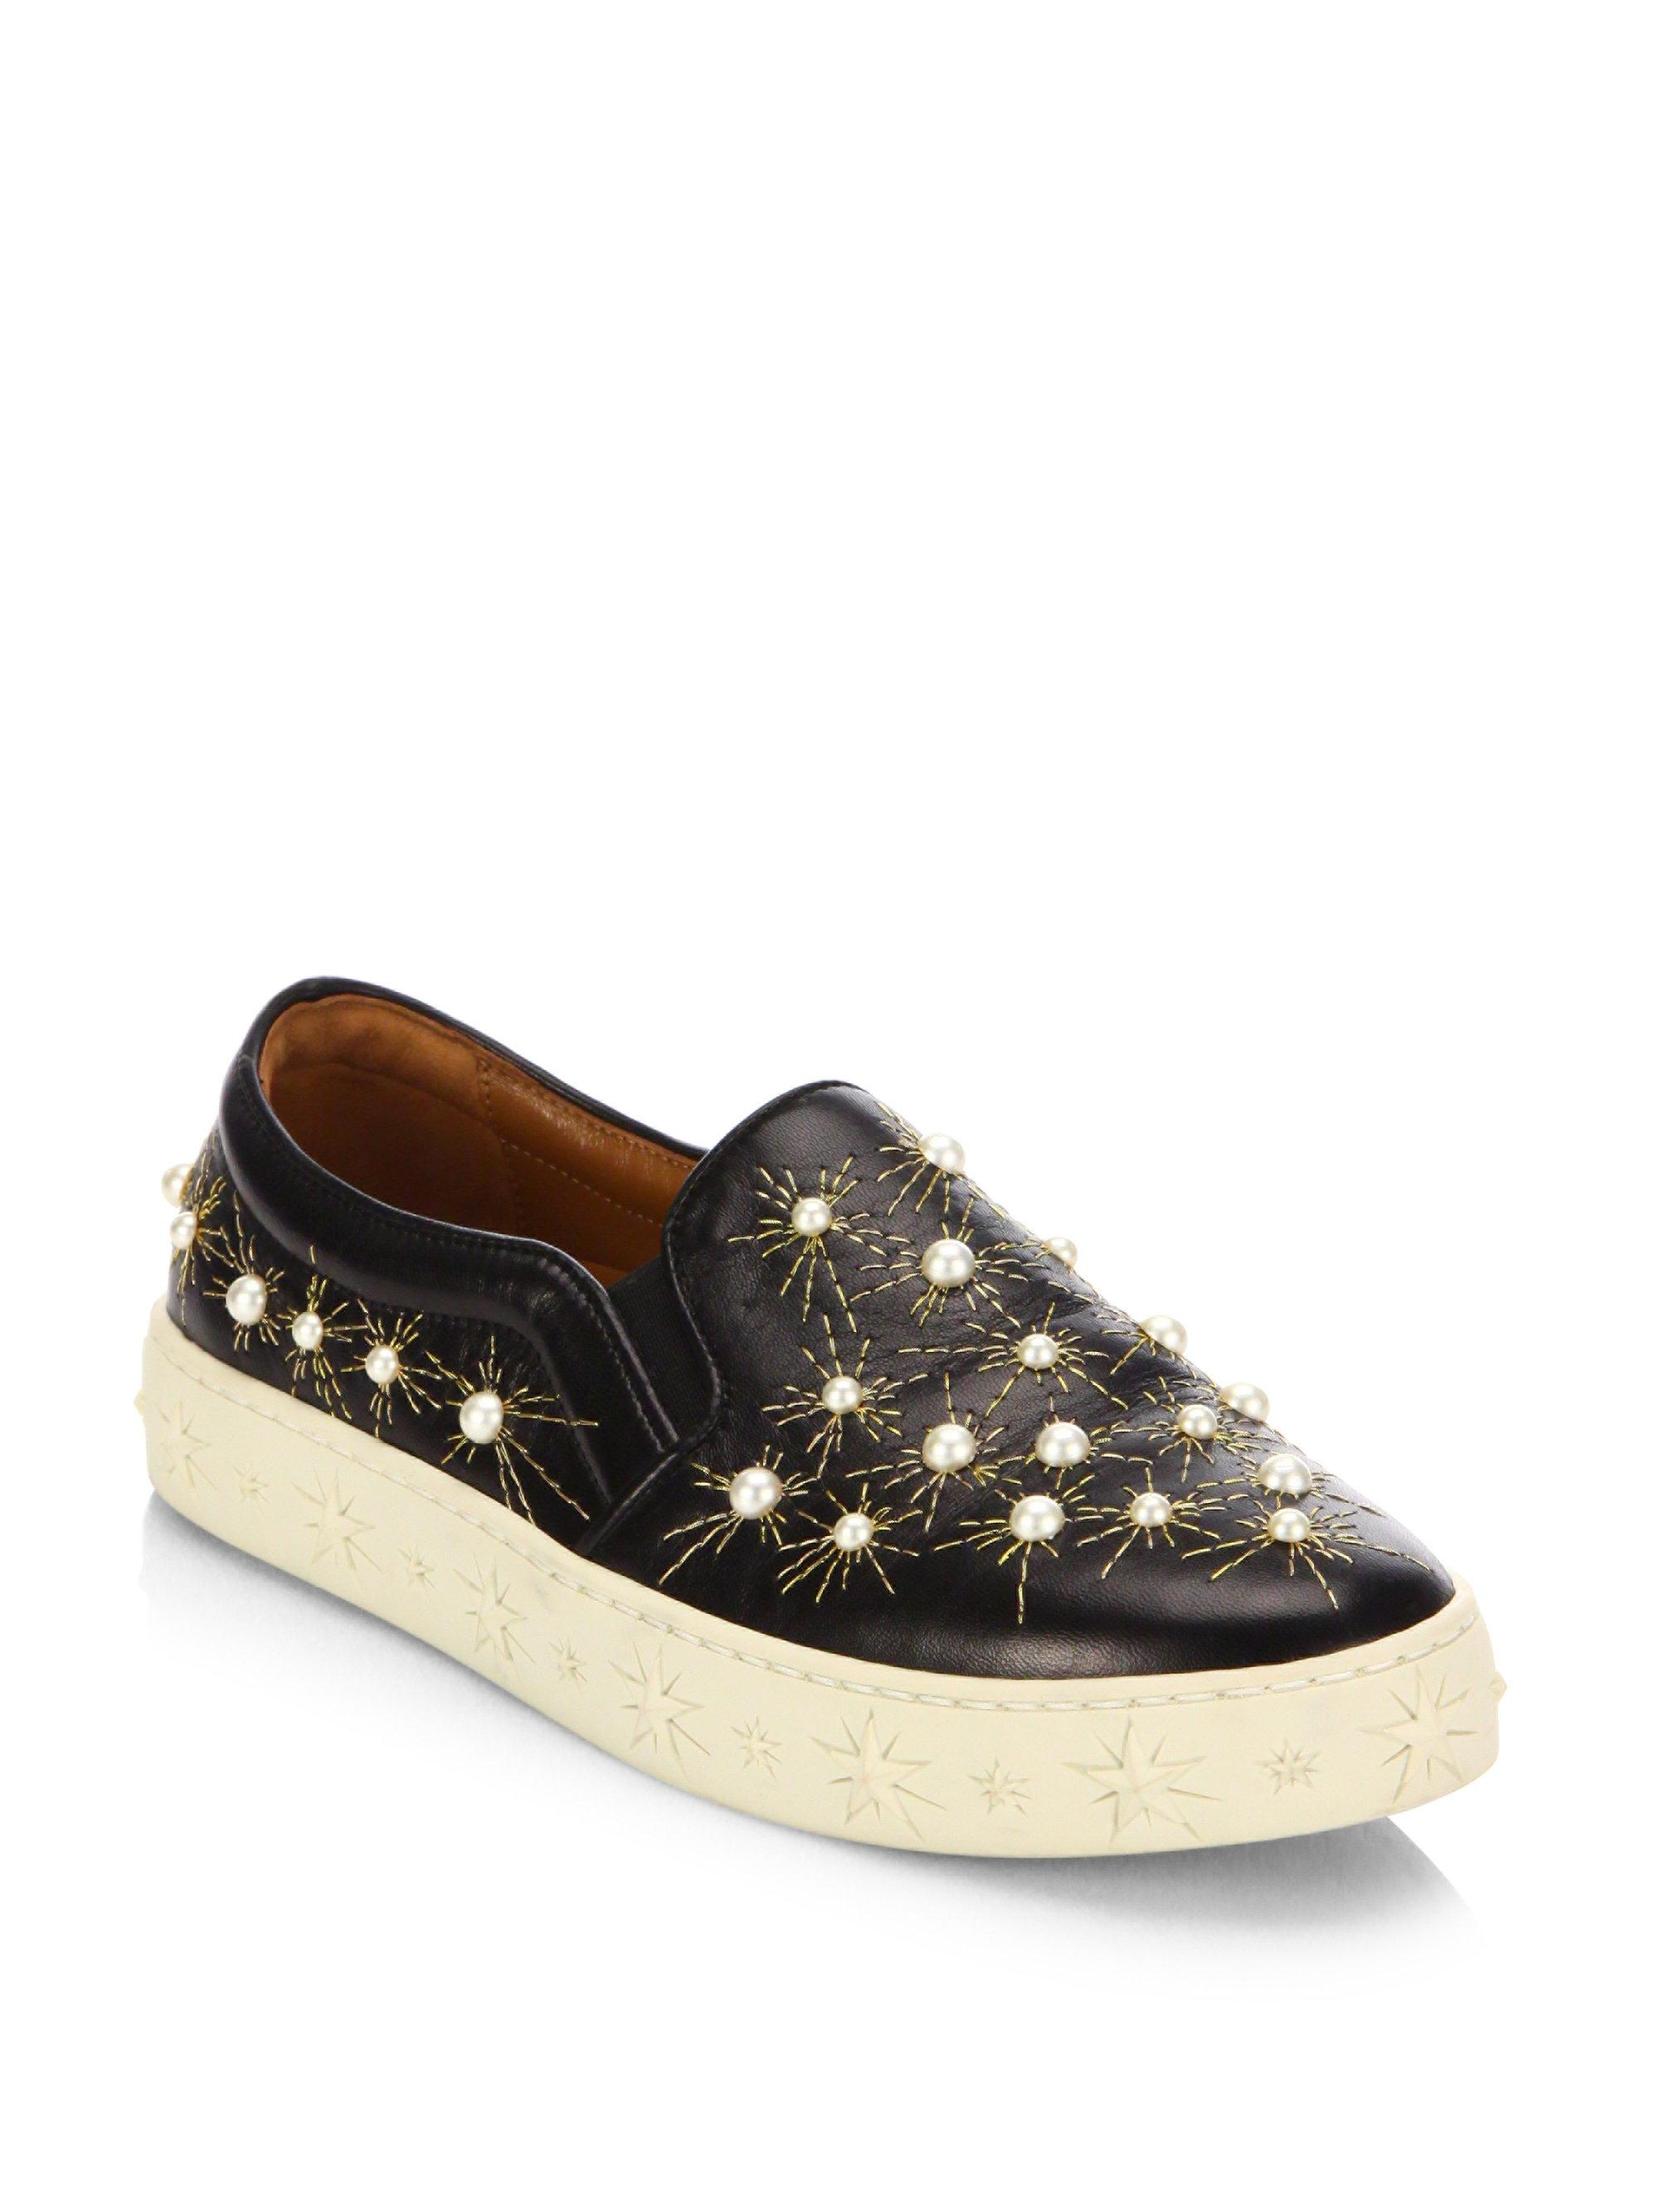 Fast Delivery Outlet Store Locations Aquazzura Cosmic Pearl leather slip-on sneakers Buy Cheap 100% Original p0Nmej